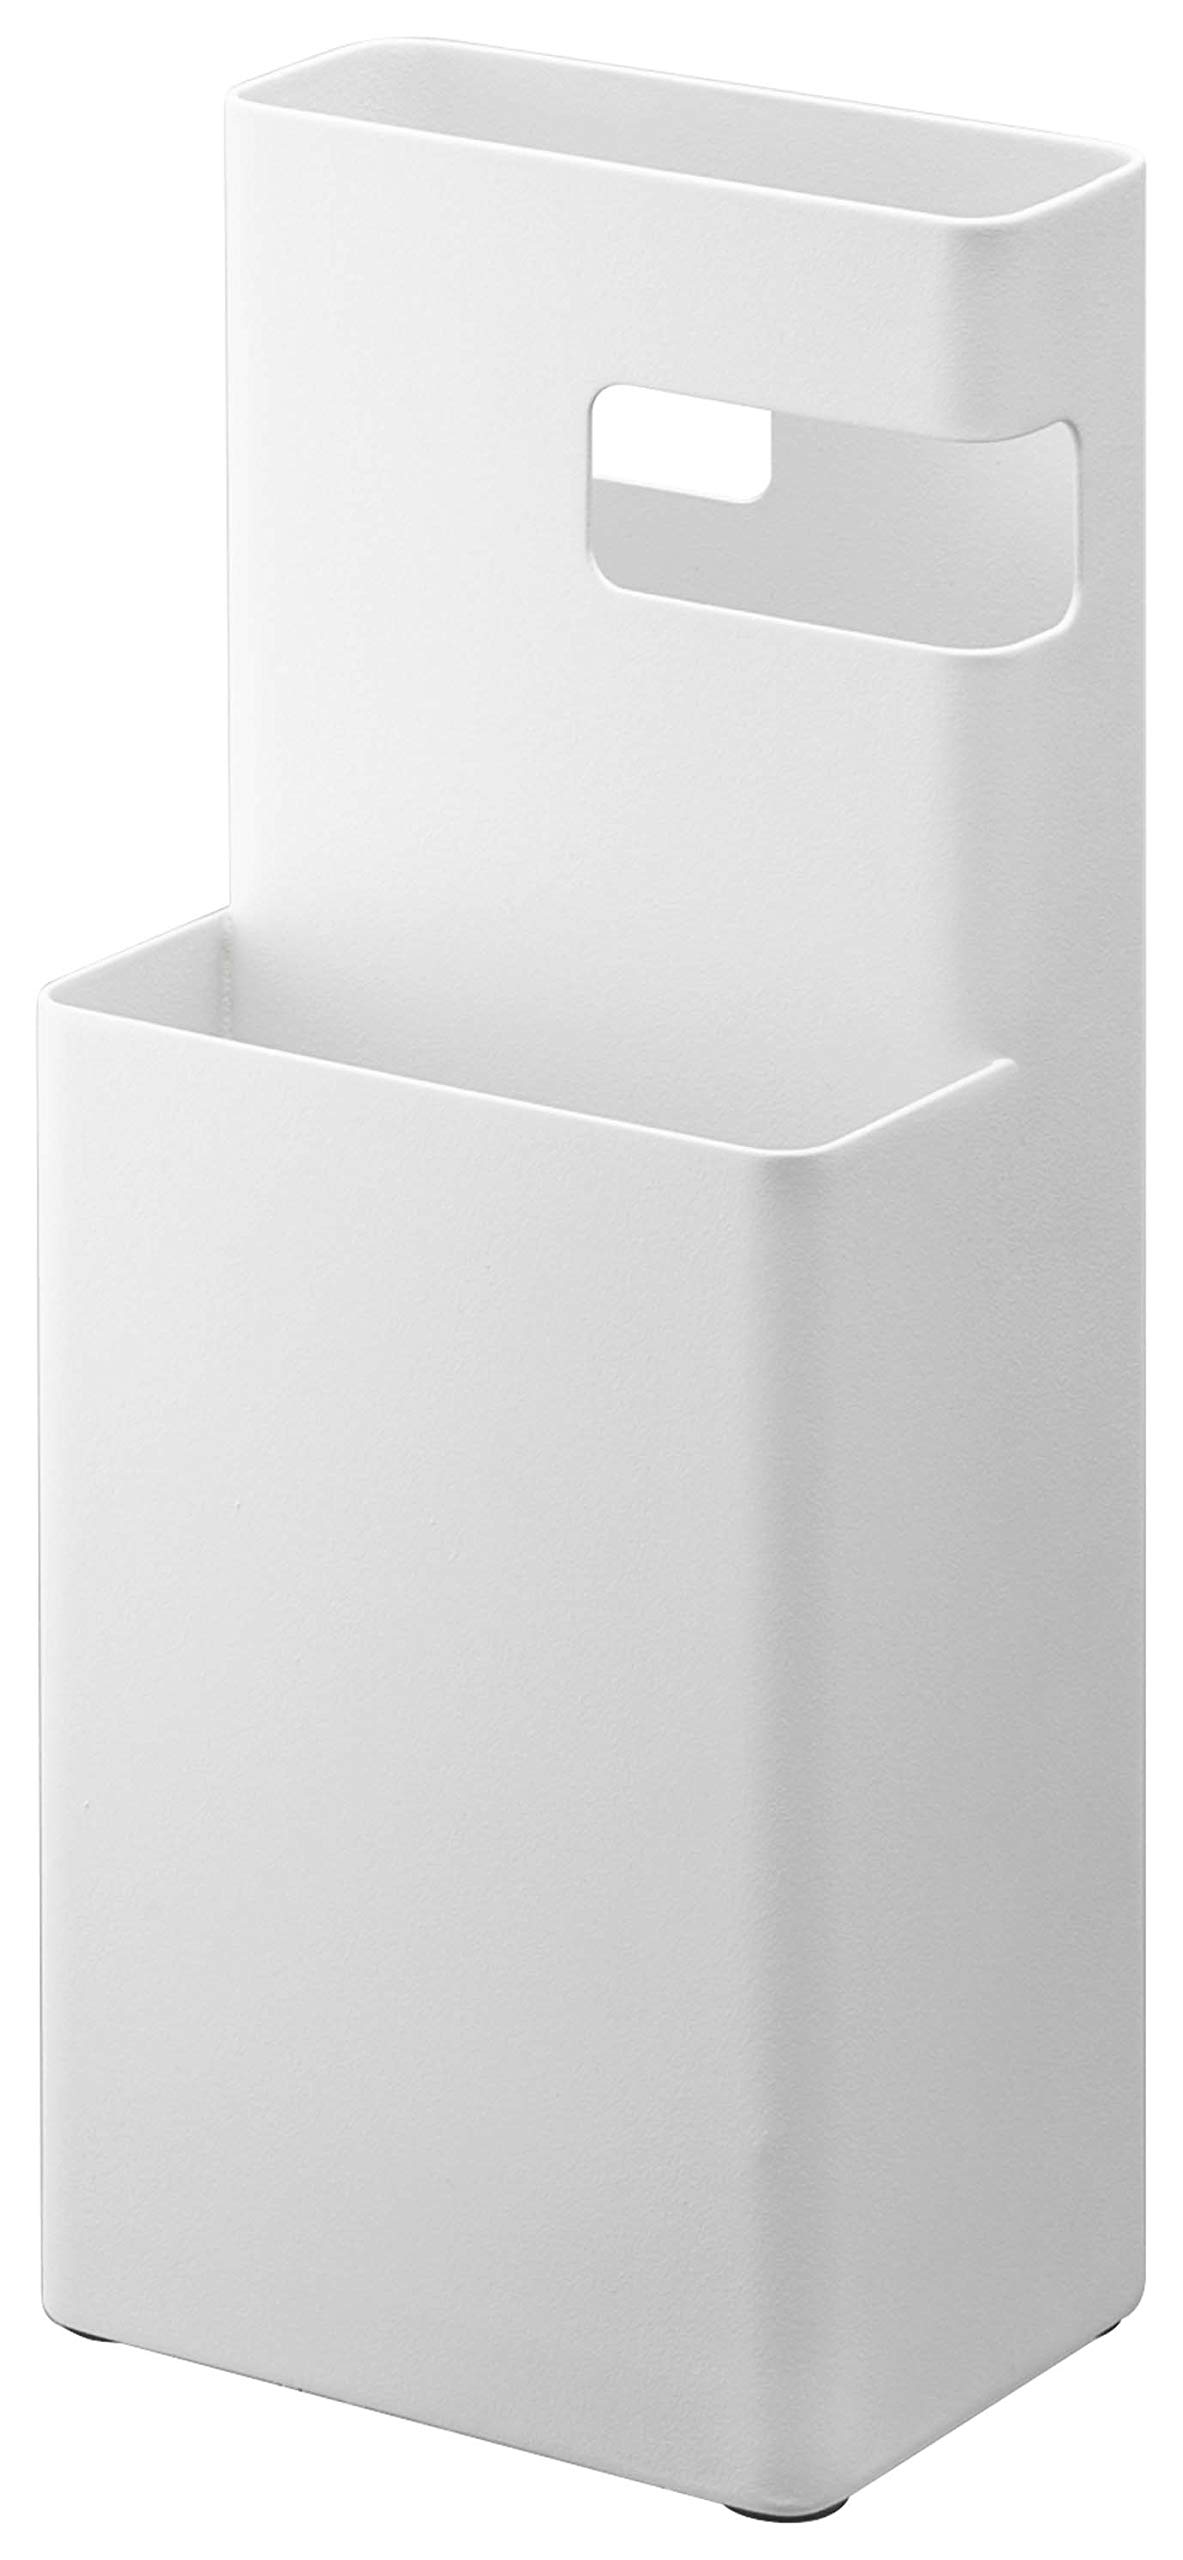 YAMAZAKI home 3173 Duo Sweeper Stand WH Space Saving One Size White